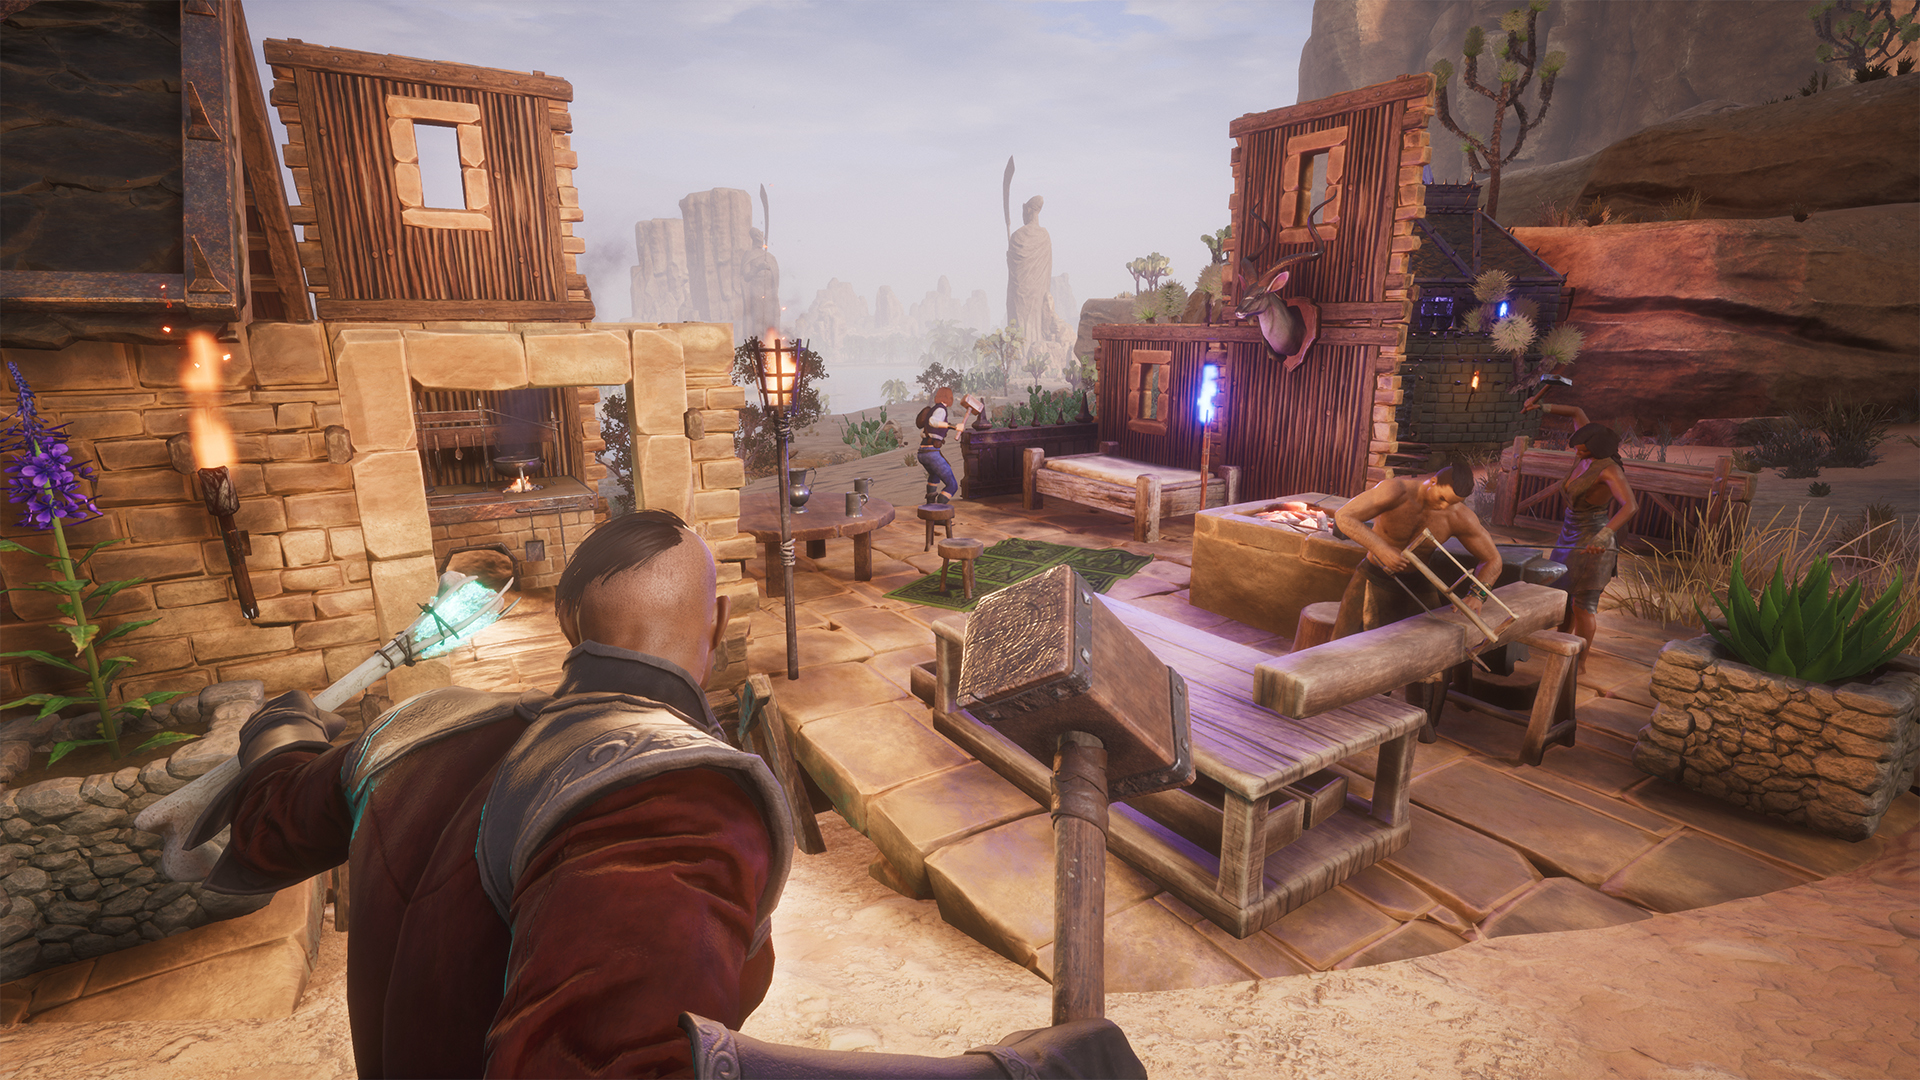 conan-exiles-screenshot.jpg